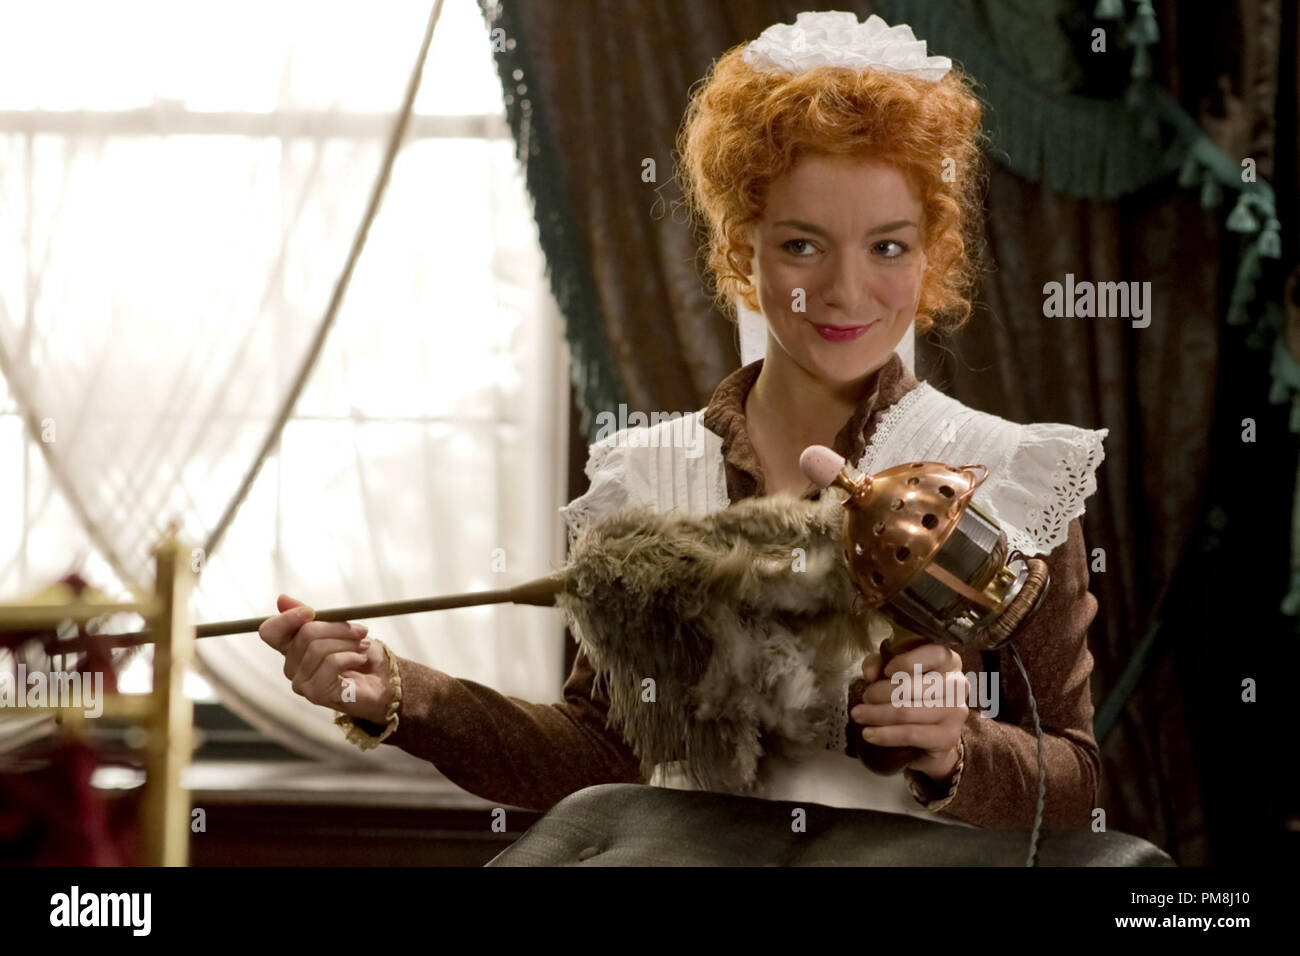 Sheridan Smith stars as Molly the Lolly in Sony Pictures Classics' Hysteria (2012). Photo credit by Ricardo Vaz Palma. - Stock Image